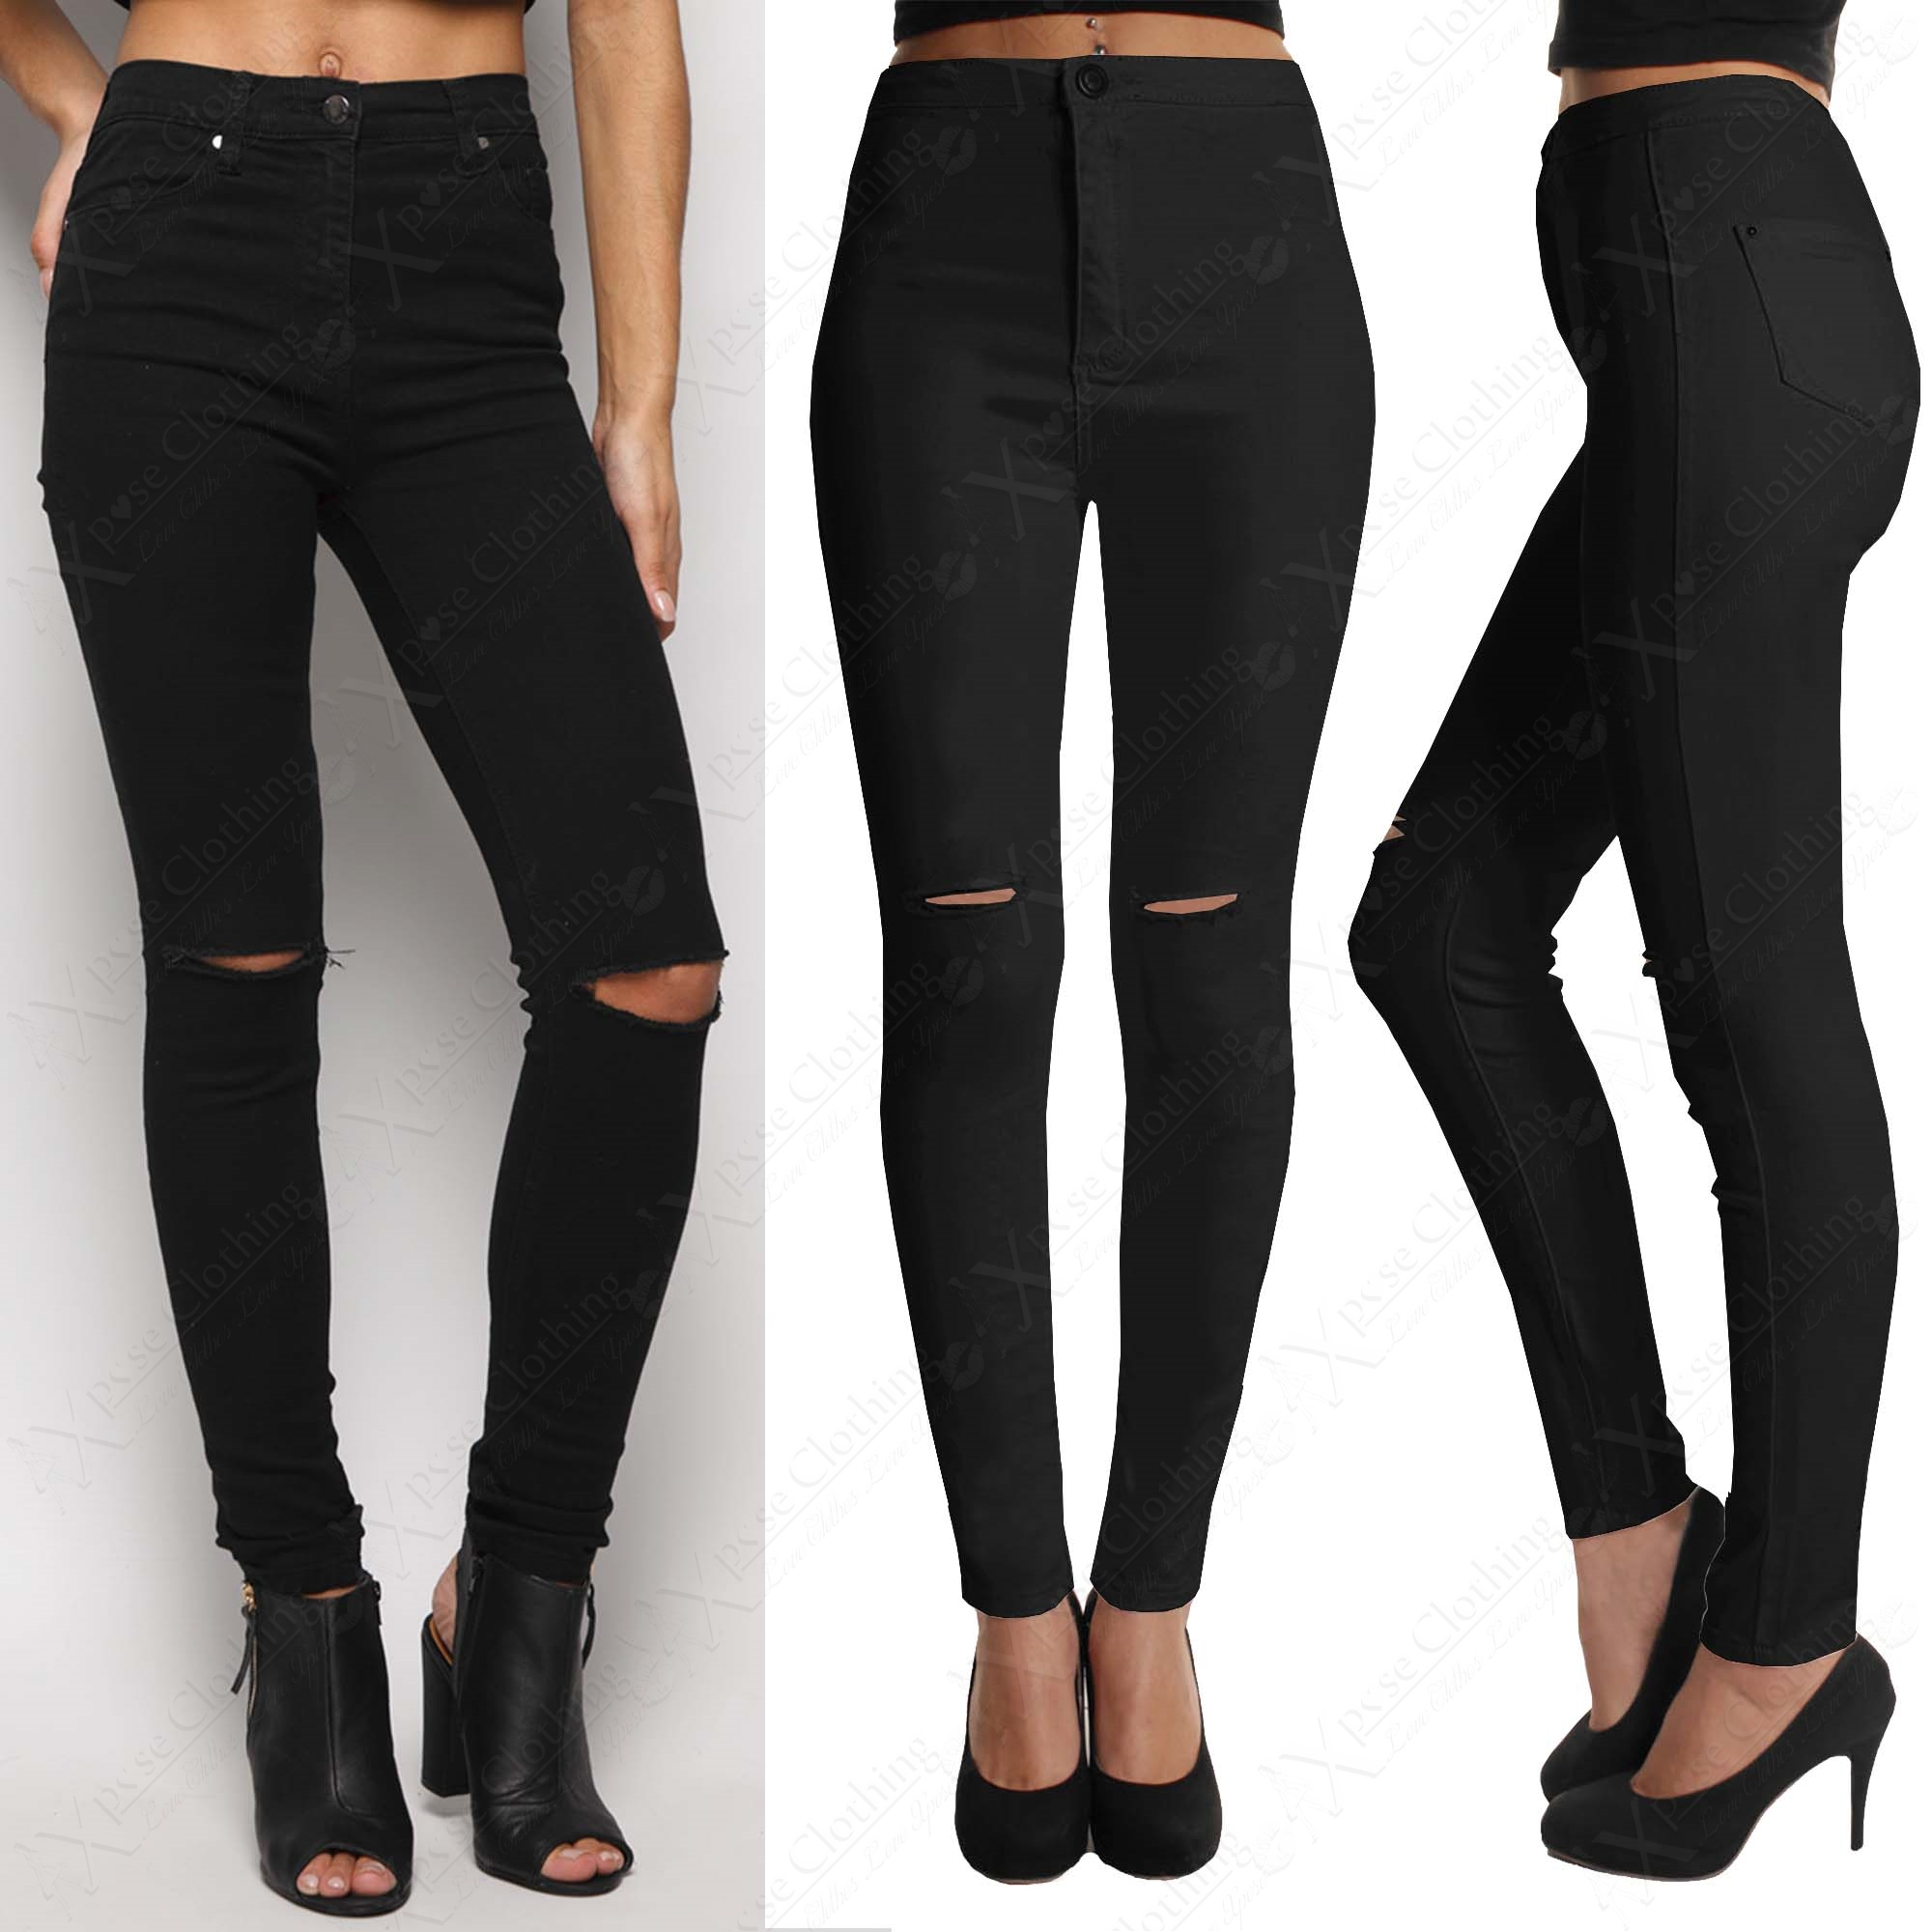 Black skinny ripped jeans womens – Global fashion jeans collection